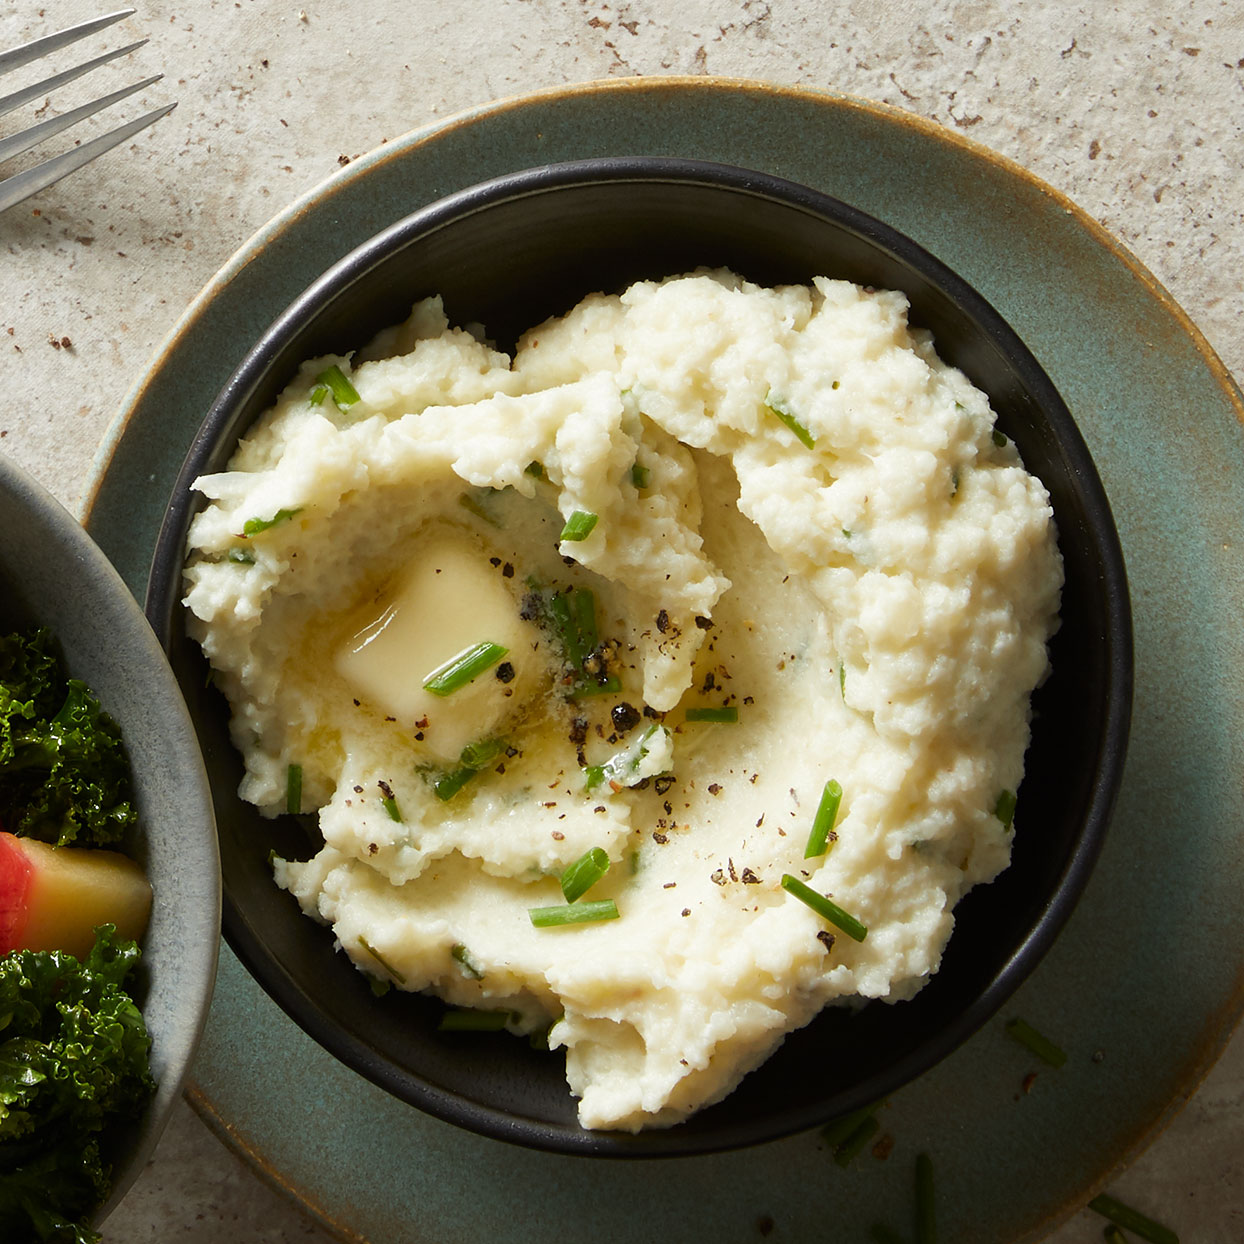 This mashed cauliflower recipe with butter and sour cream mimics the taste and texture of mashed potatoes. The swap saves you 40 grams of Carbohydrates and 100 calories per cup, plus it quadruples the vitamin C, giving you 82% of your Daily Value of the immune-boosting nutrient.